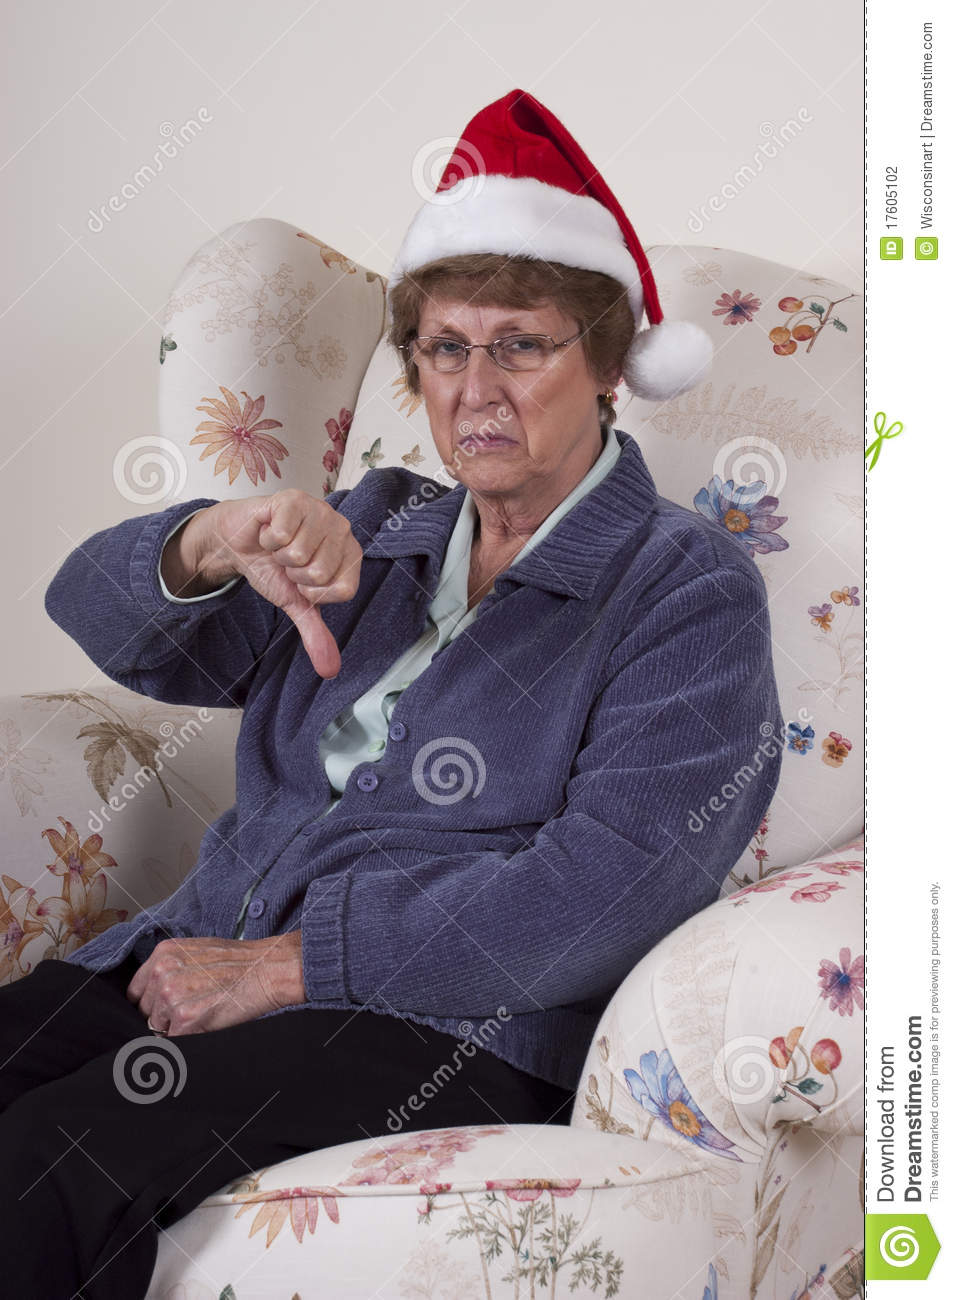 Bah Humbug Mature Senior Woman No Christmas Spirit Stock Photo ...